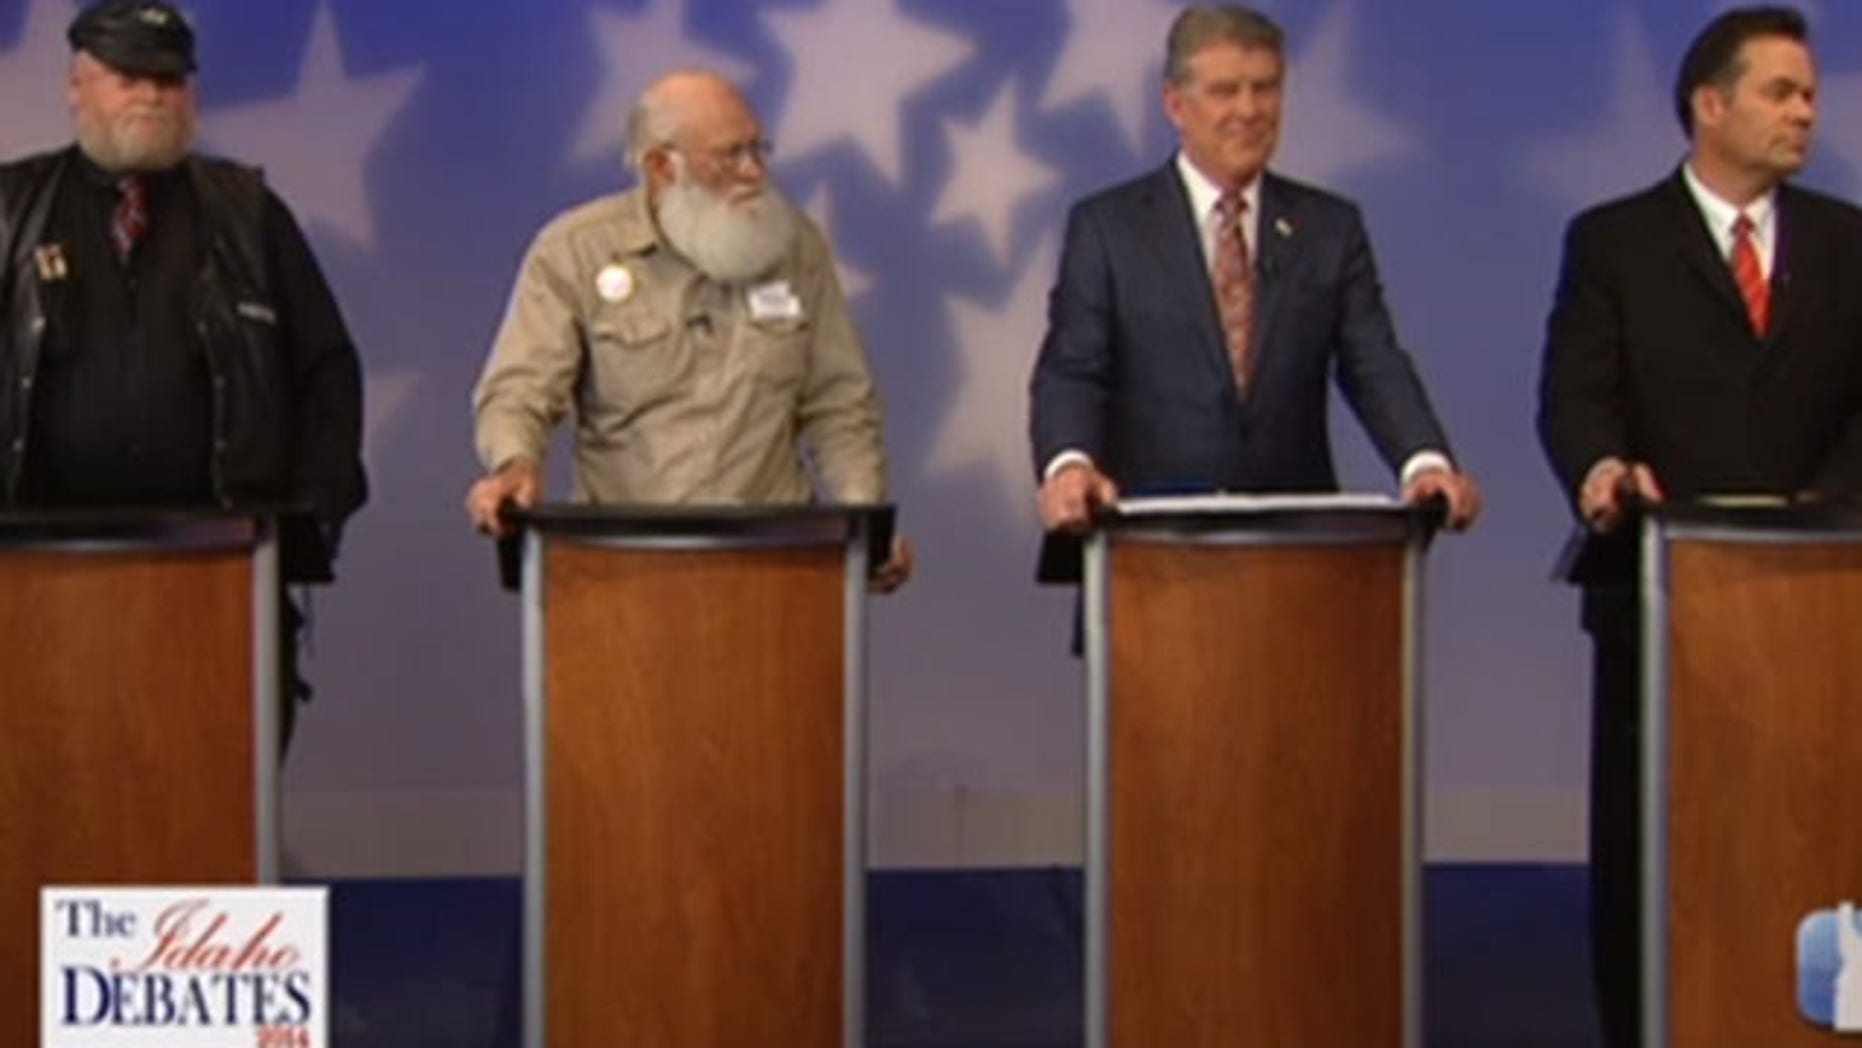 May 15, 2014: The candidates for the Republican nomination for governor in Idaho face off in a debate.